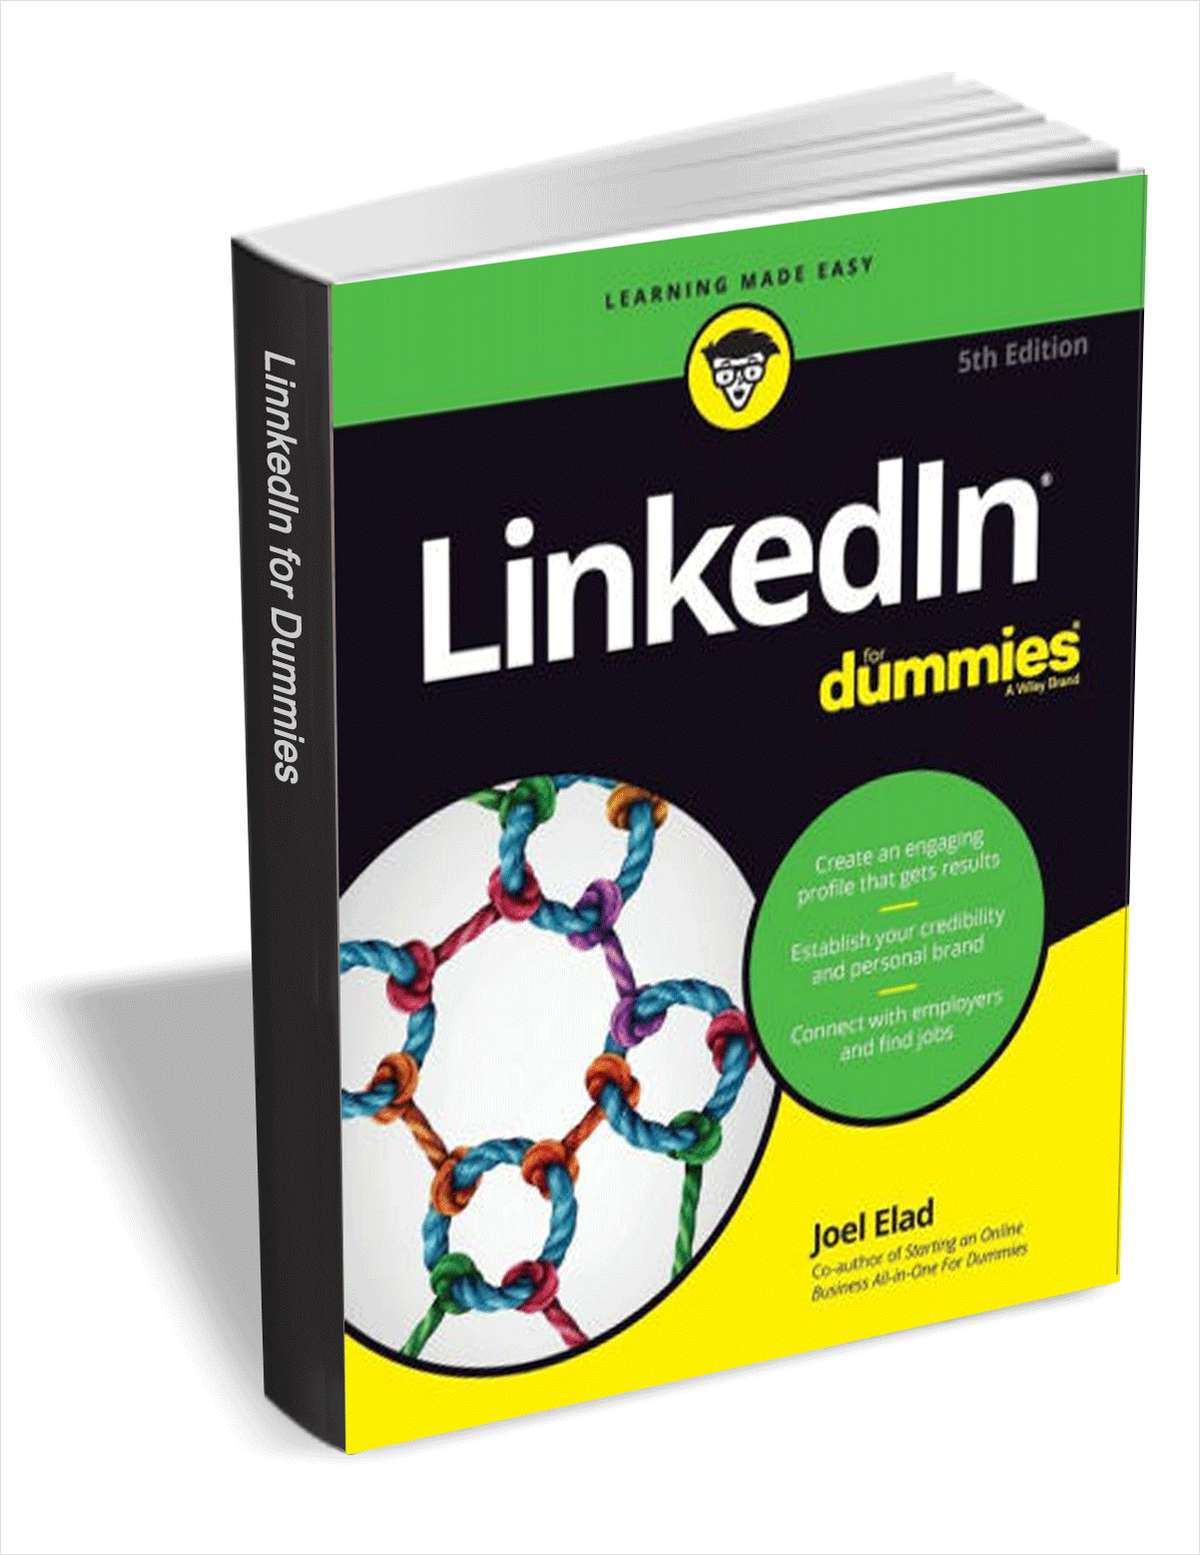 LinkedIn For Dummies, 5th Edition ($24.99 Value) FREE for a Limited Time